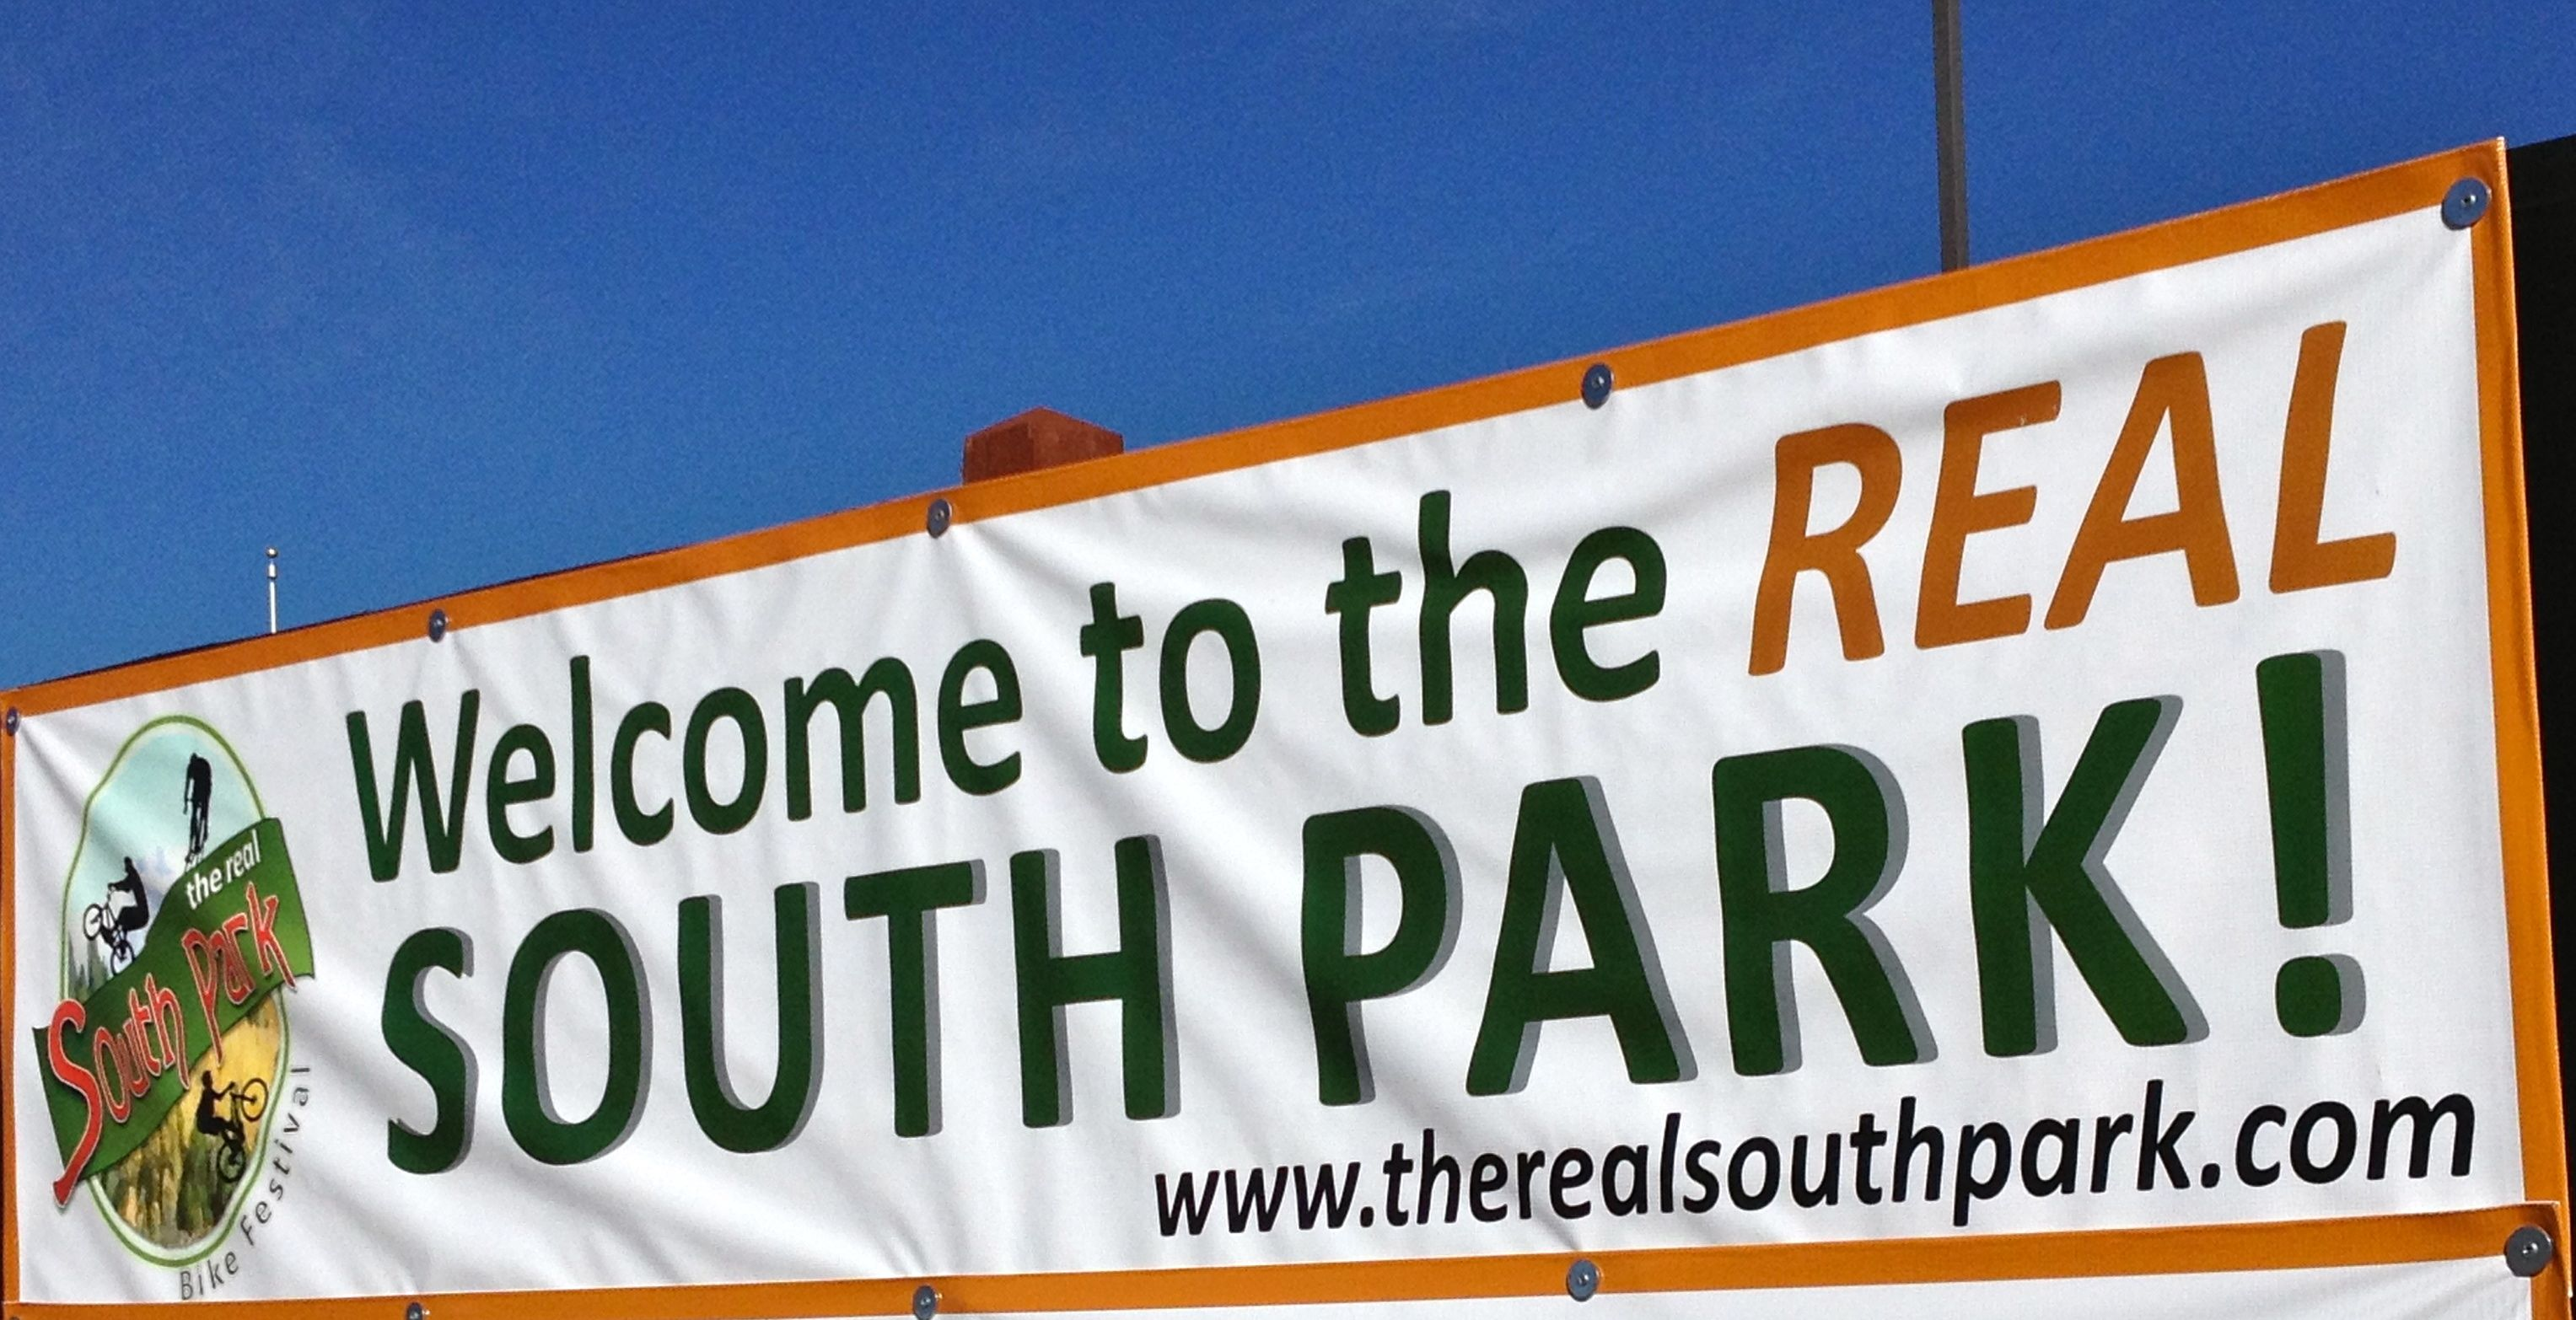 the friday funny sign south park is a real place and